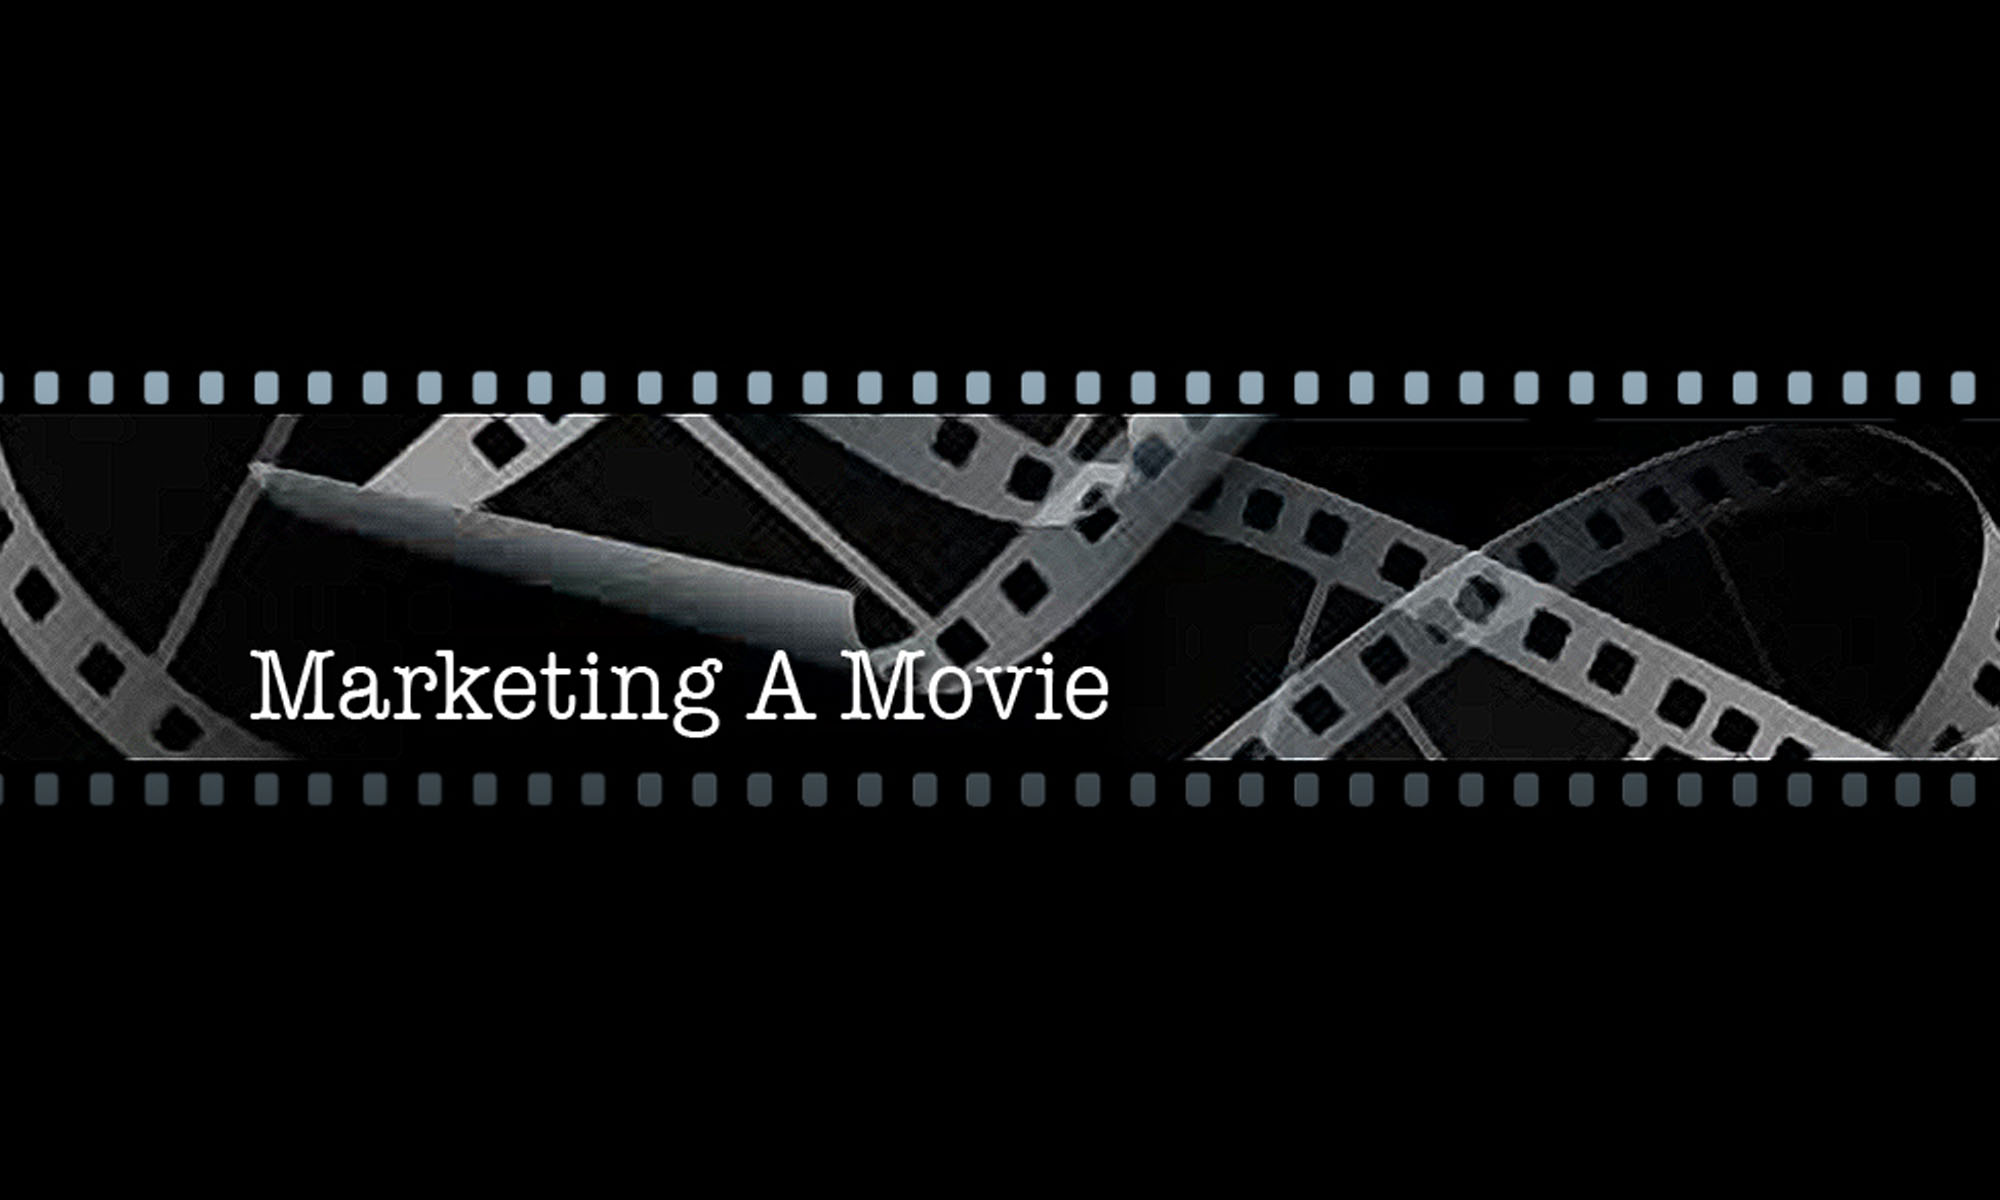 Marketing A Movie header